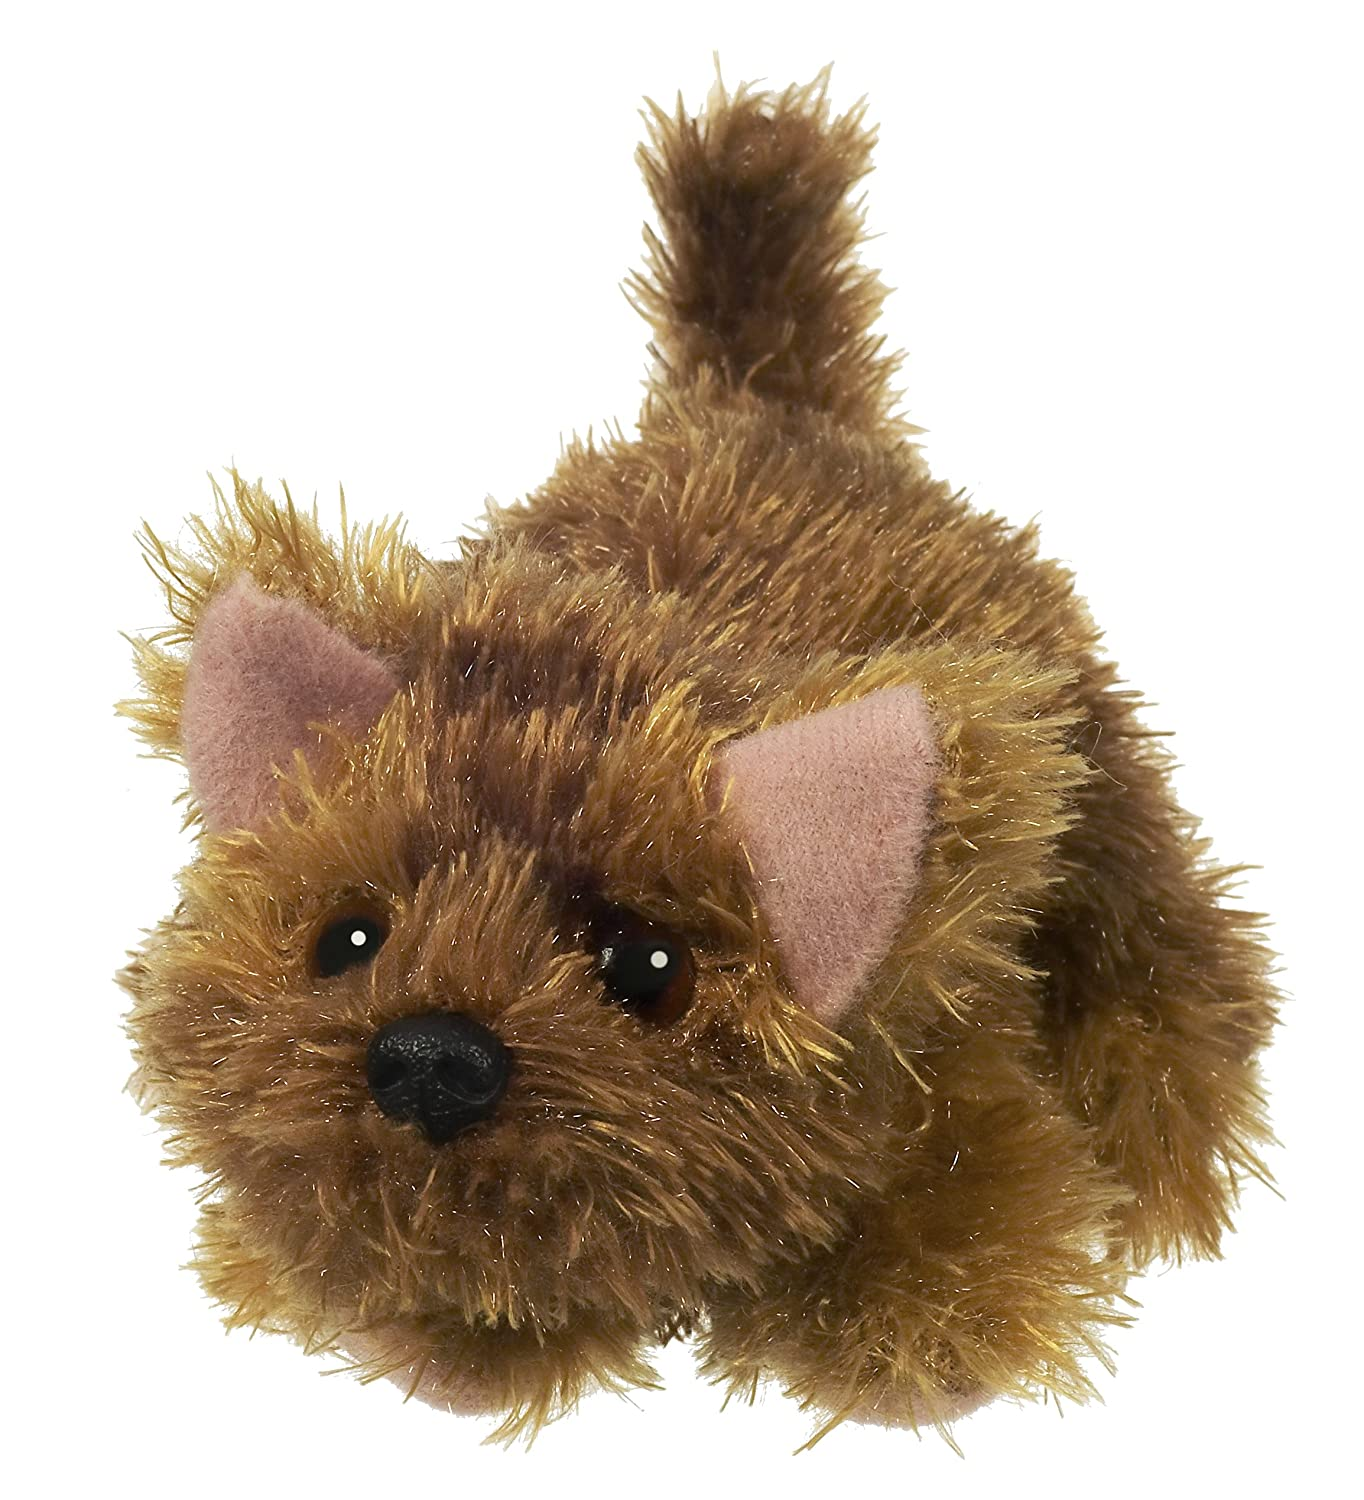 Hasbro Furreal Friends Snuggimals - Puppy Chocolate Color by Hasbro B00413OW8I